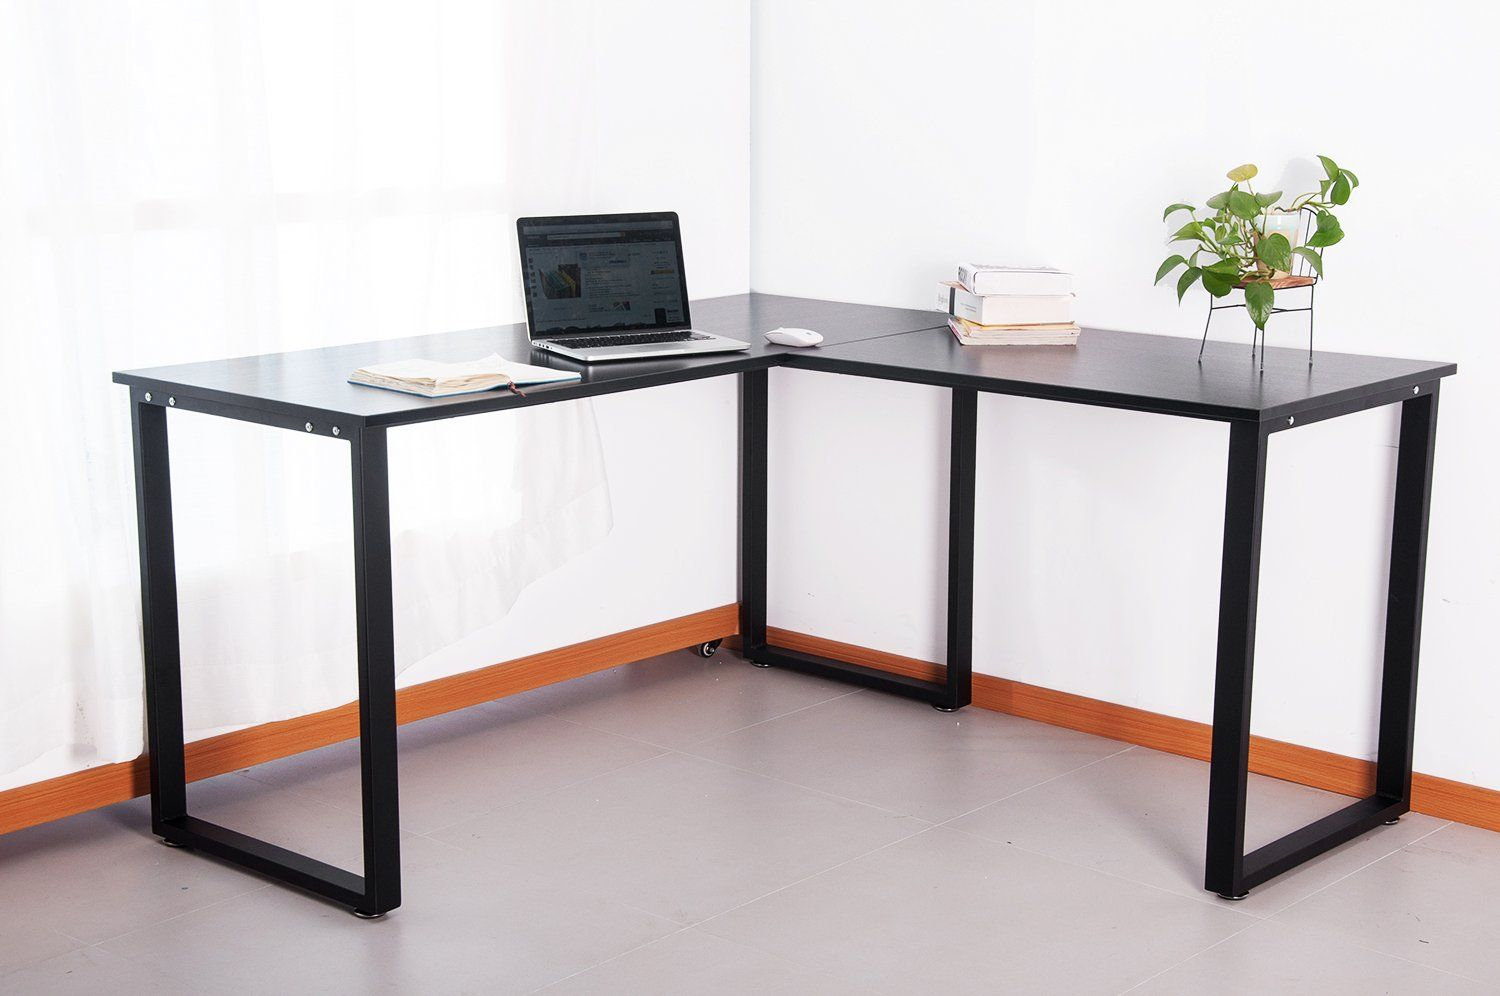 lighting to legs diy a top desk metal remodelaholic wood build dans and with complete how townhouse good le